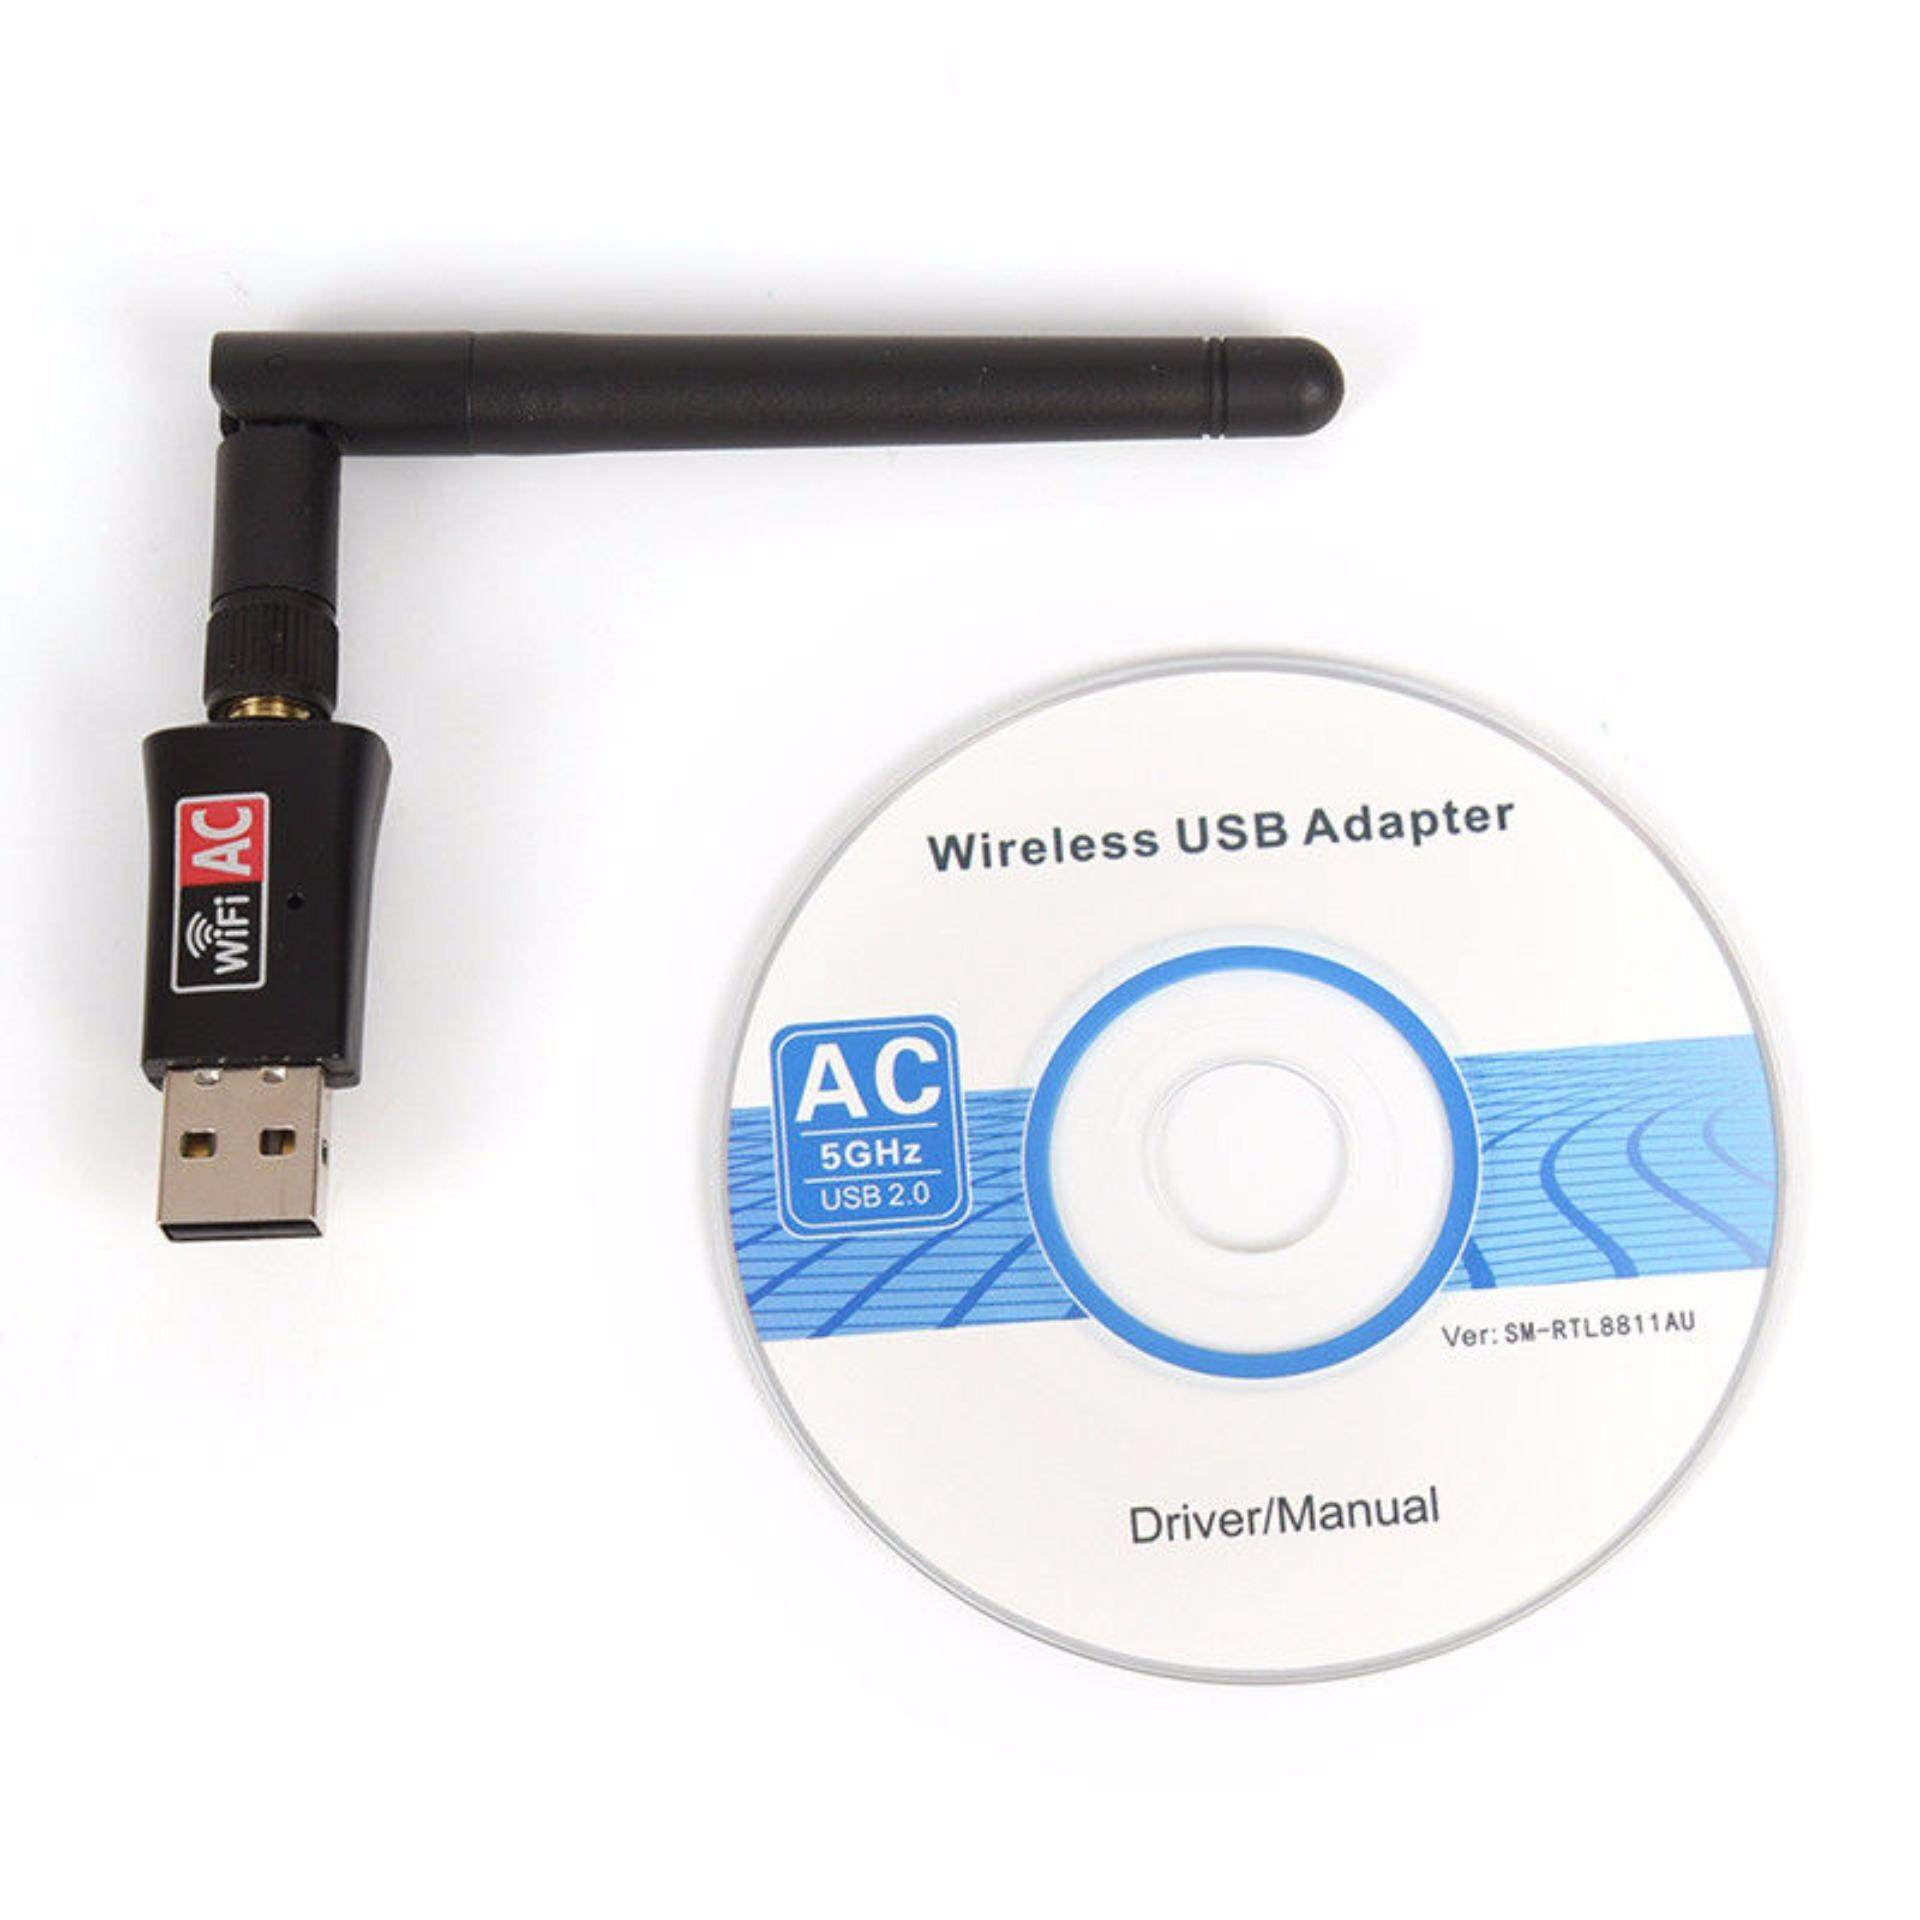 Wireless Usb Adapters For The Best Prices In Malaysia Lan Access Control 600mbps Wifi Dongle Adapter 80211ac A B G